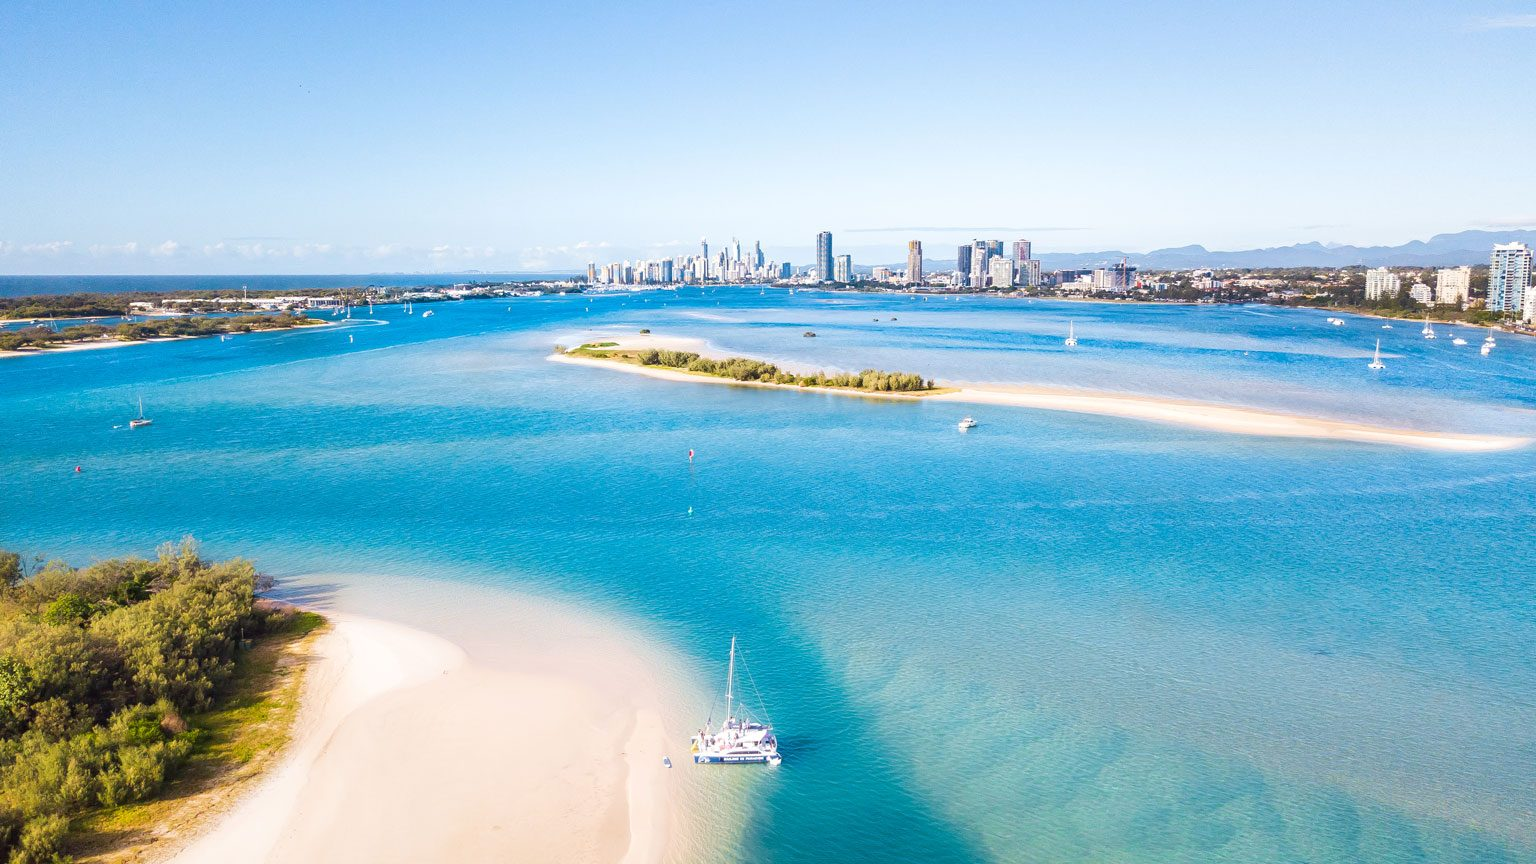 Aerial View of the Gold Coast, Australia